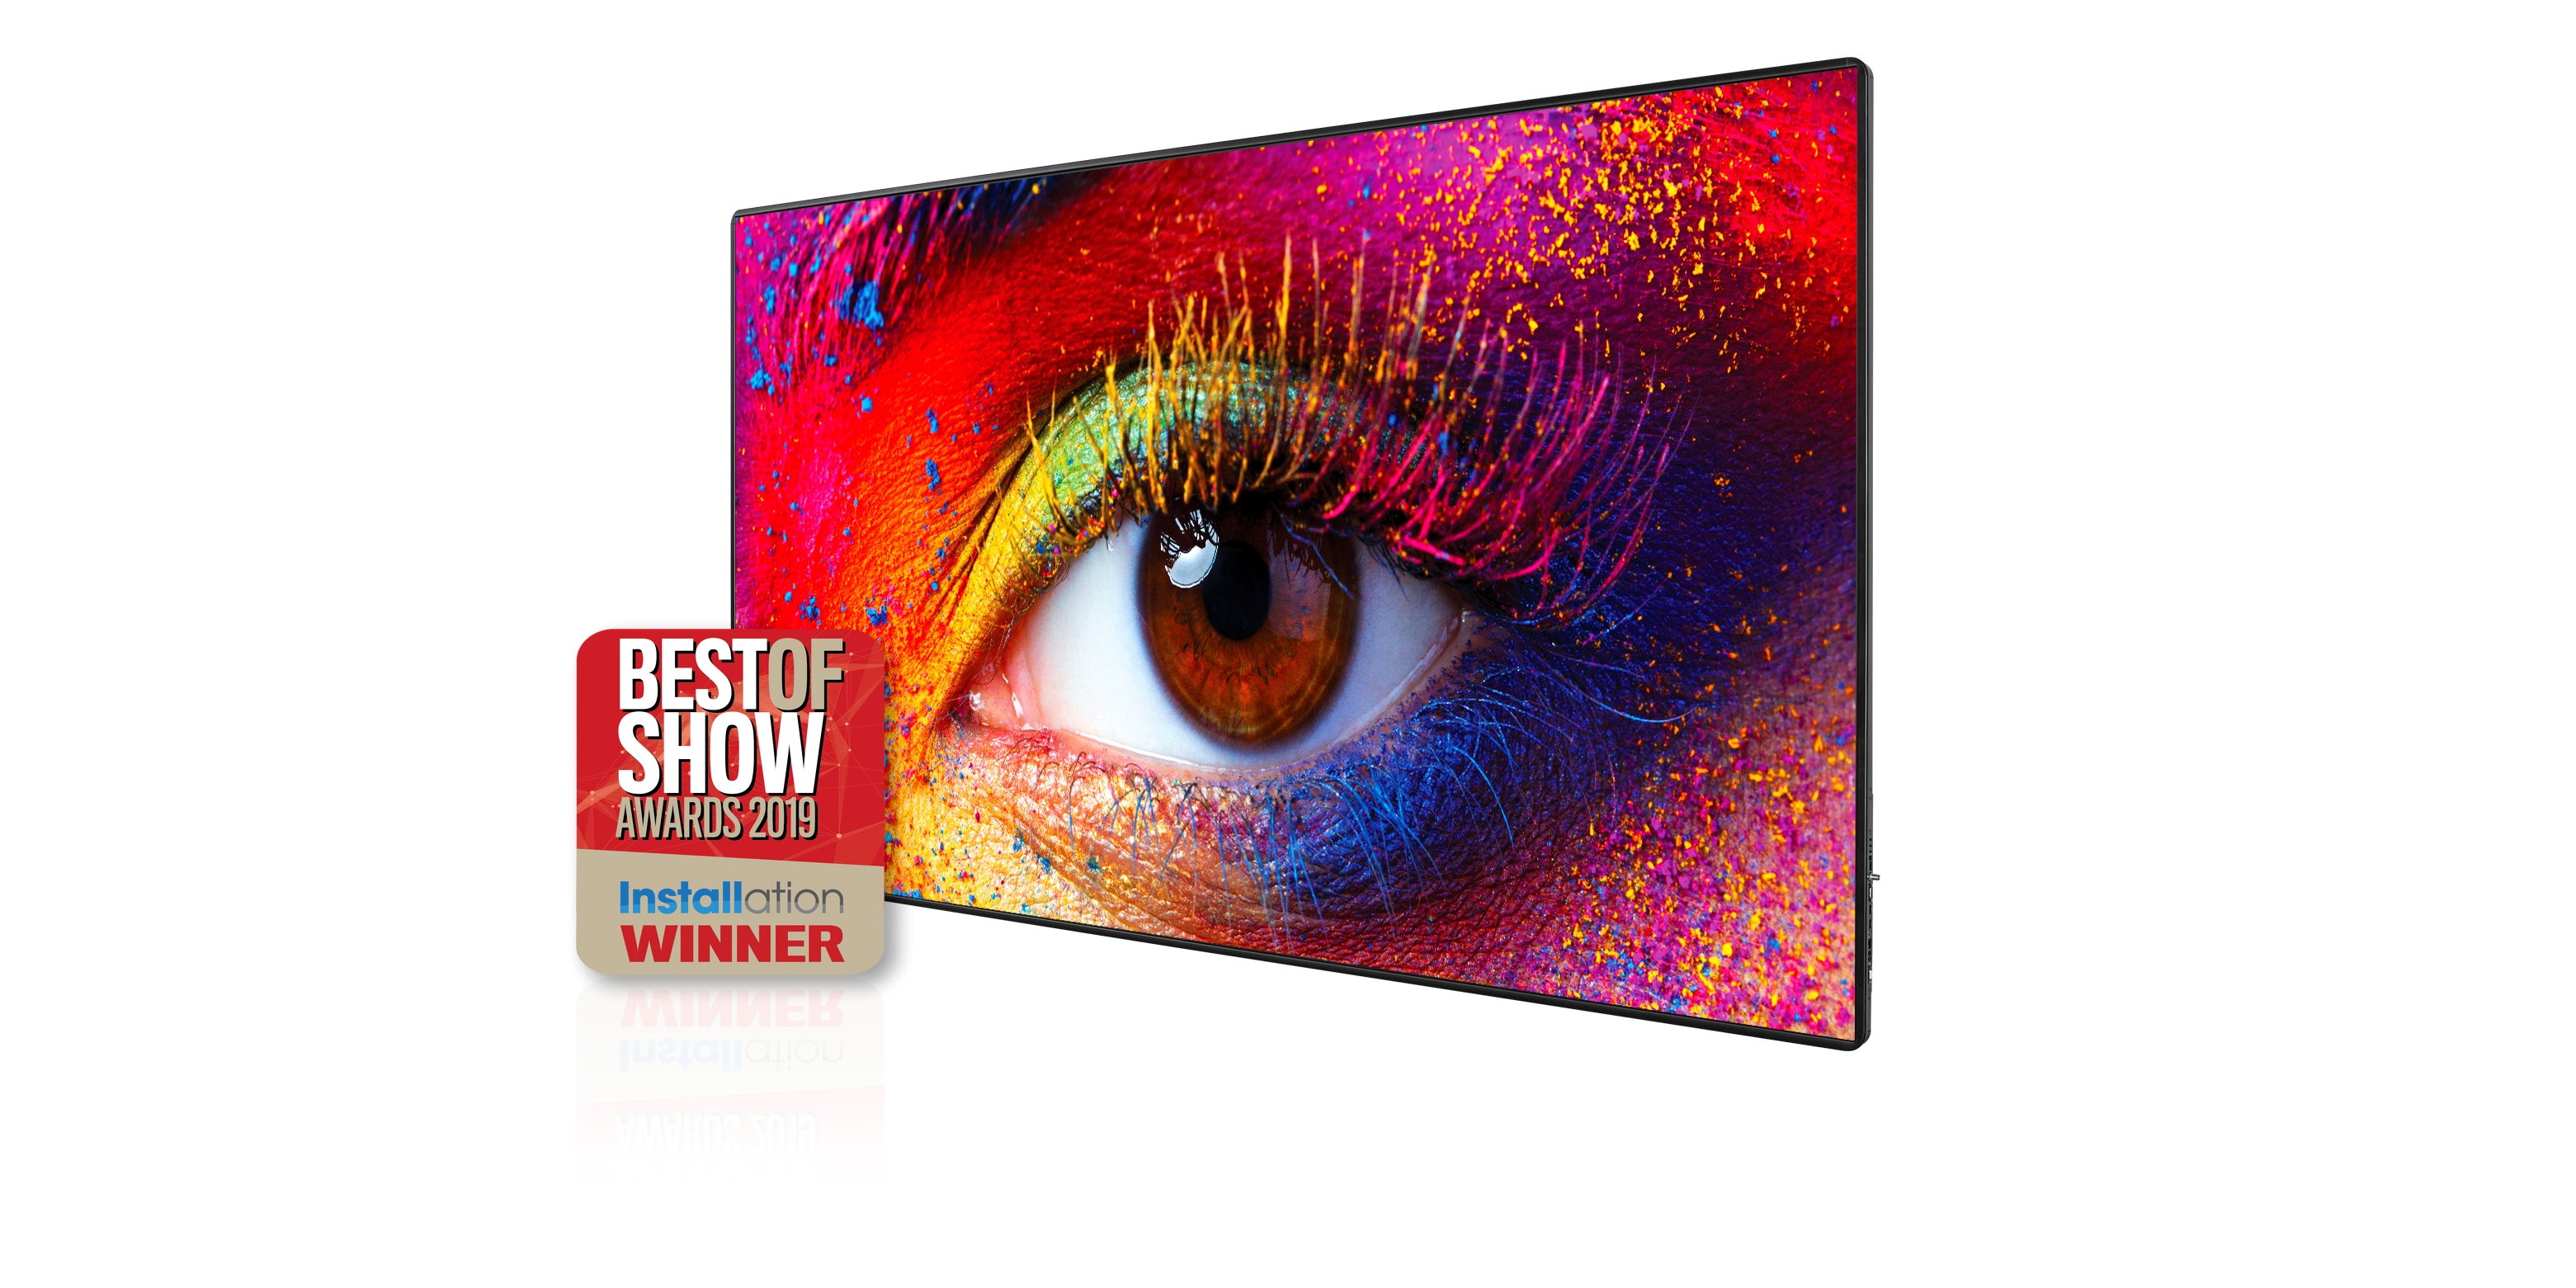 Nagrada za Best of show na ISE 2019